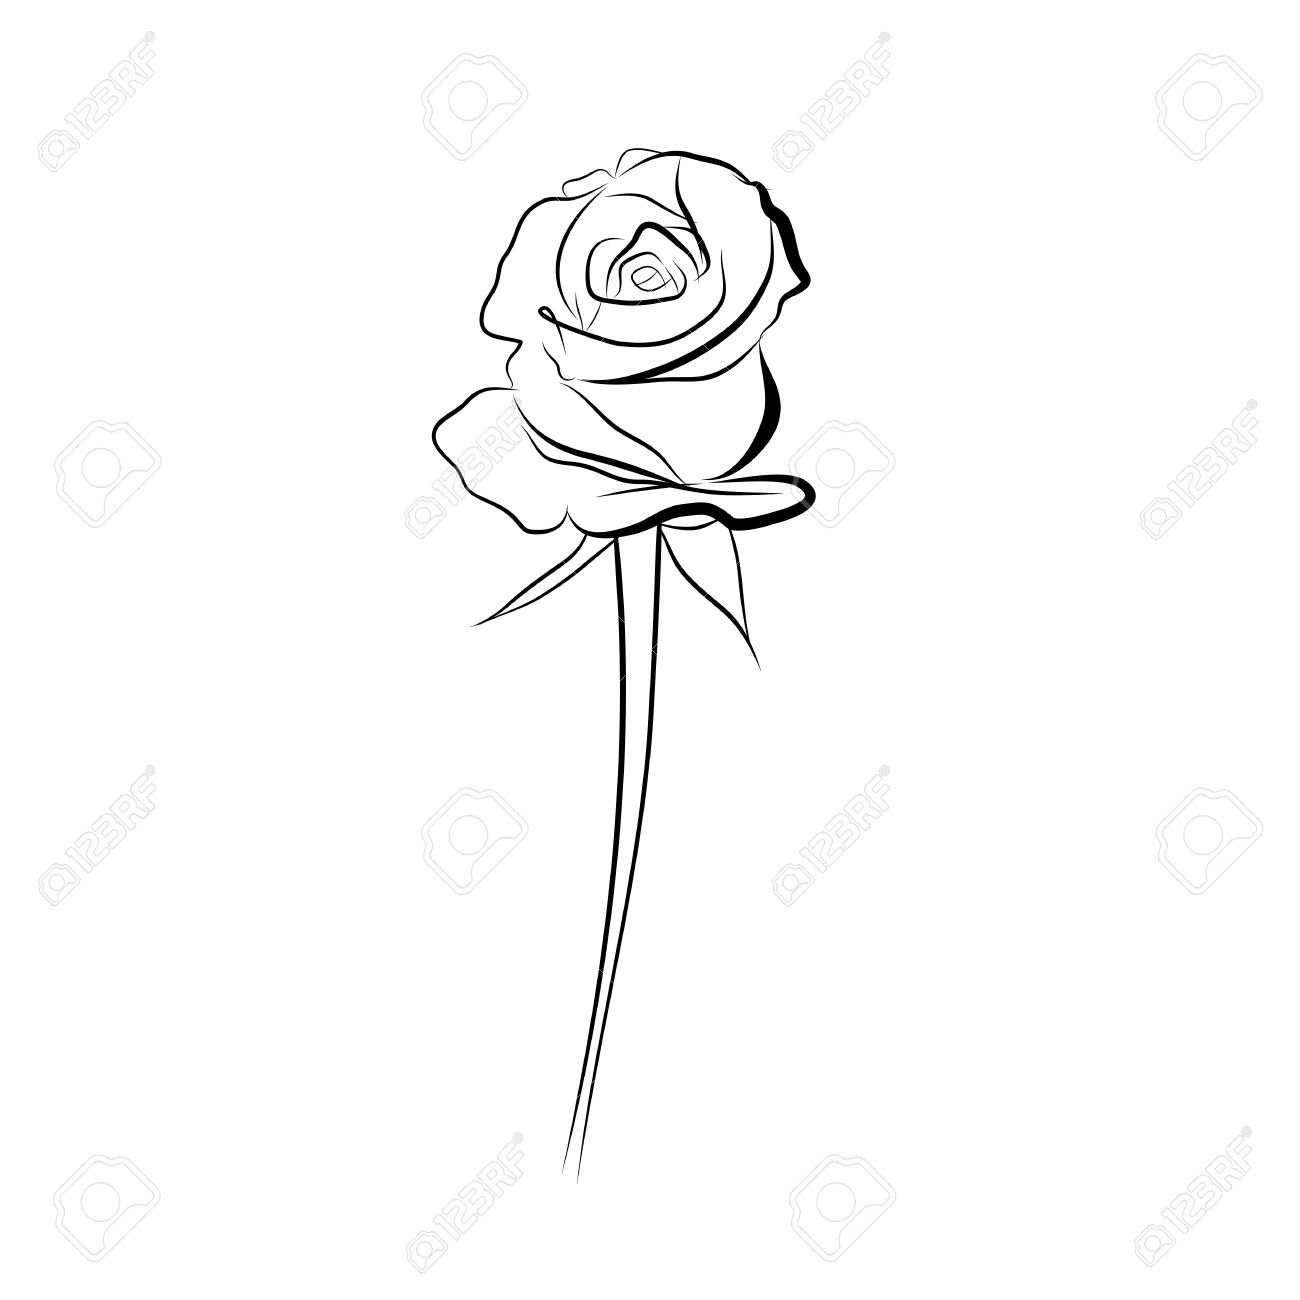 sketch line drawing of rose isolated illustration on white